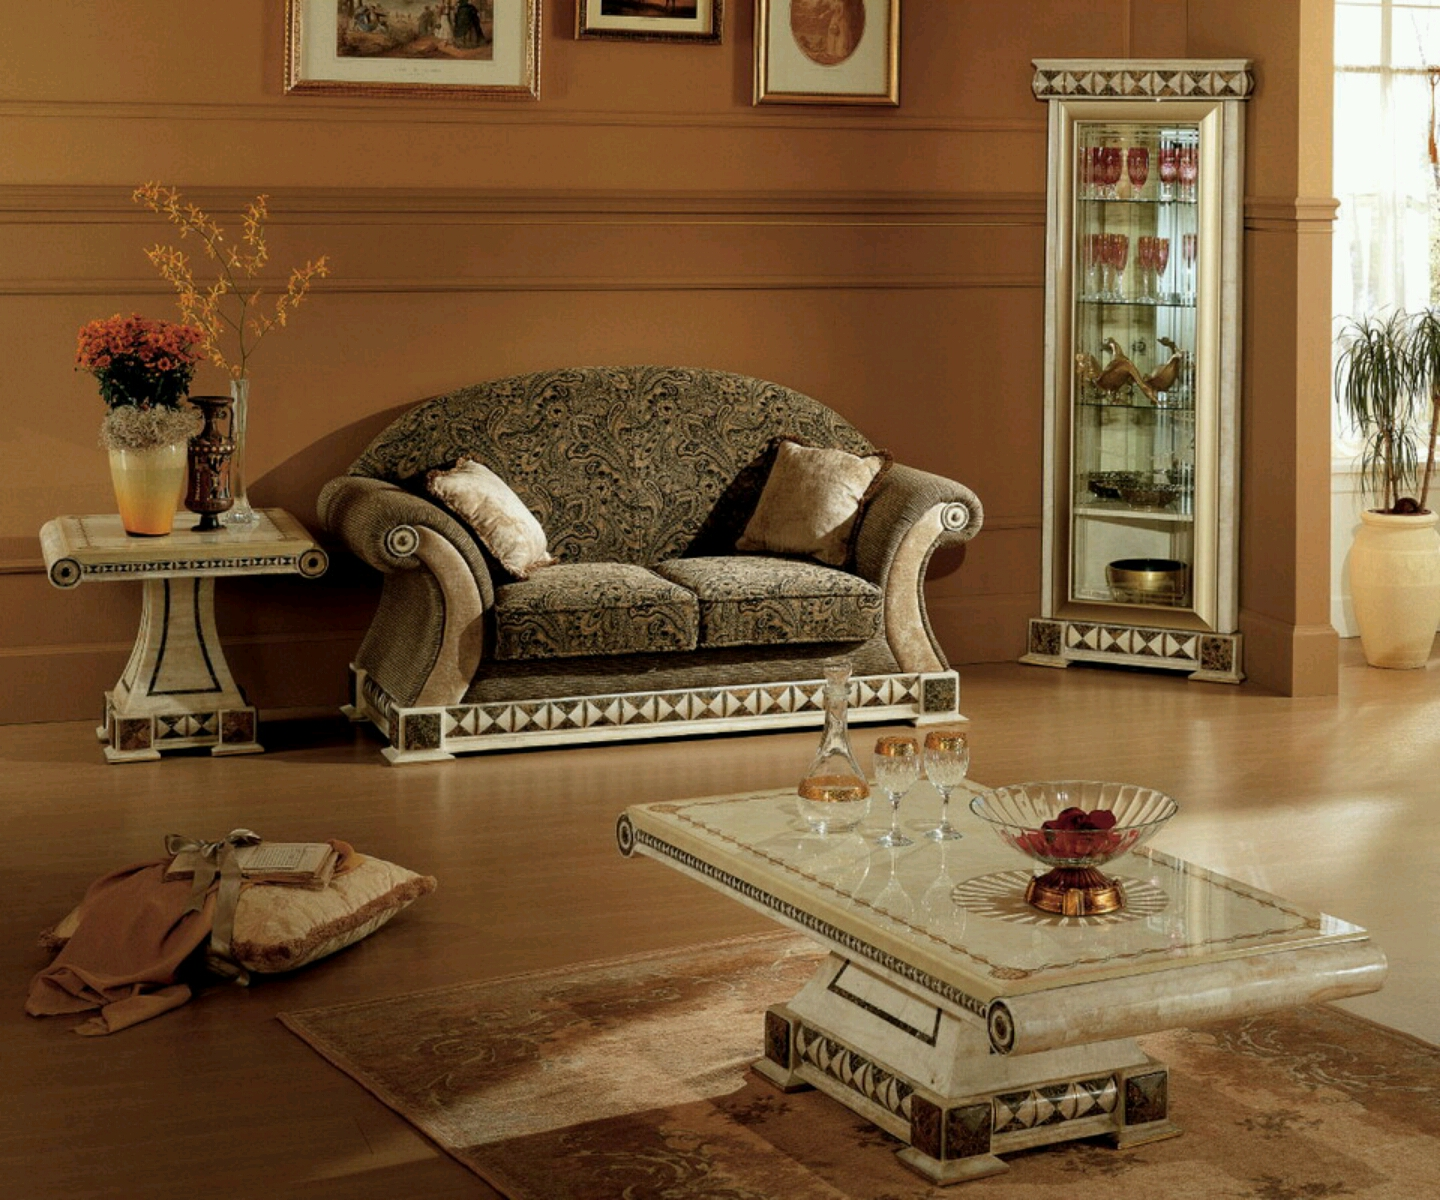 Living room design photos india living room interior designs for Kerala home living room designs